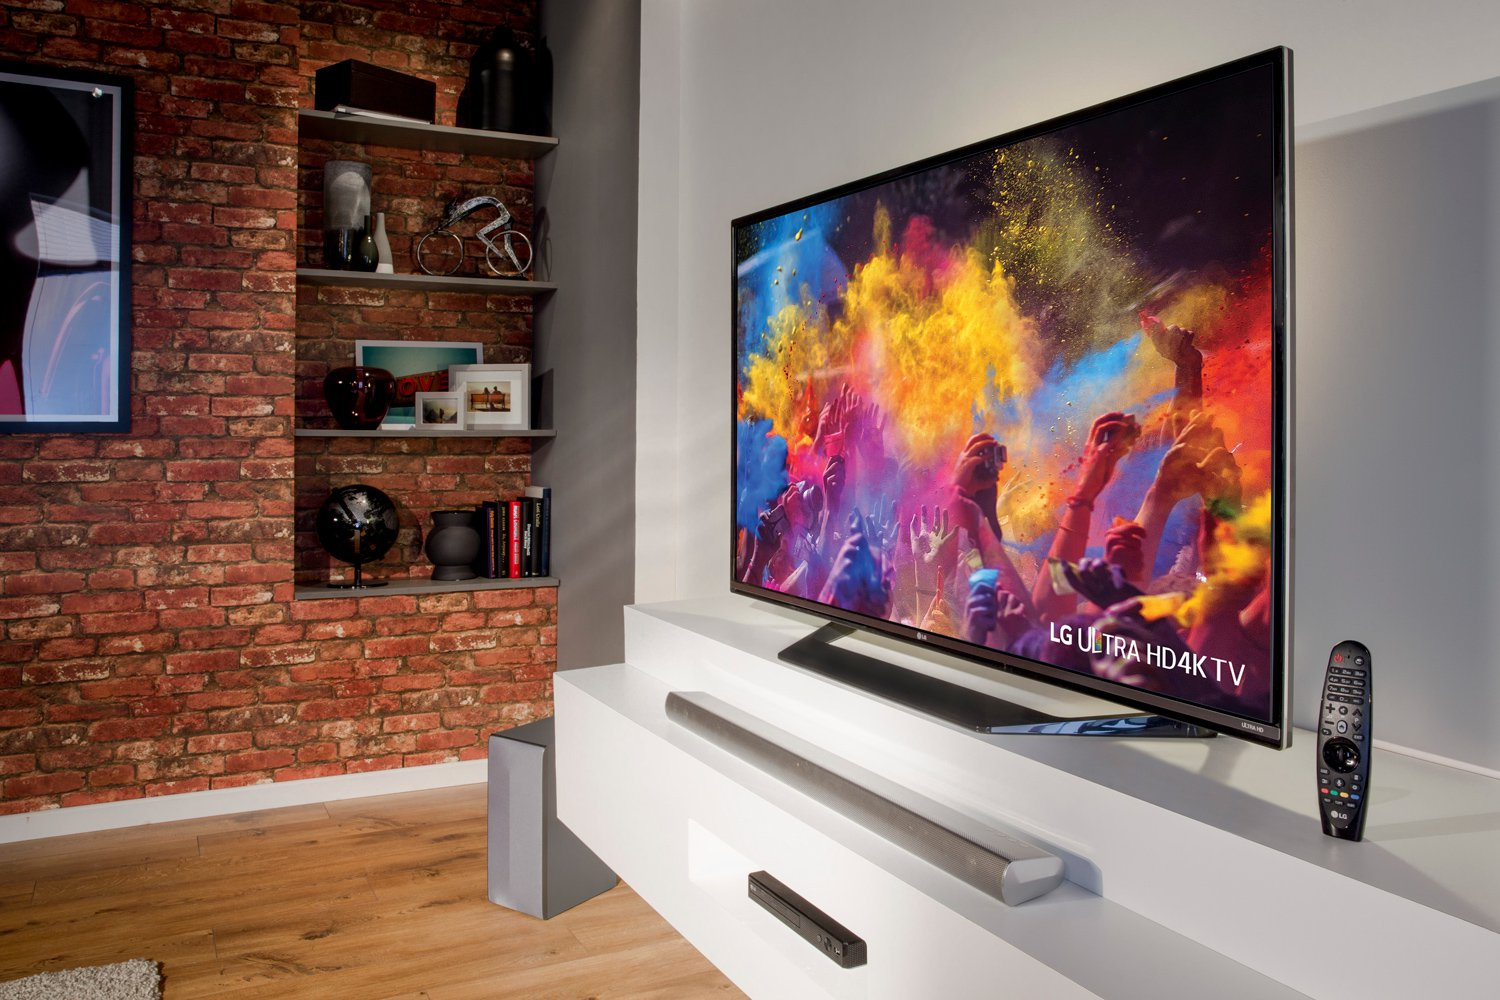 Tv Uhd 4k Review: New Lg 4k Uhd Tv With Hdr & Dolby Vision - Smarthouse